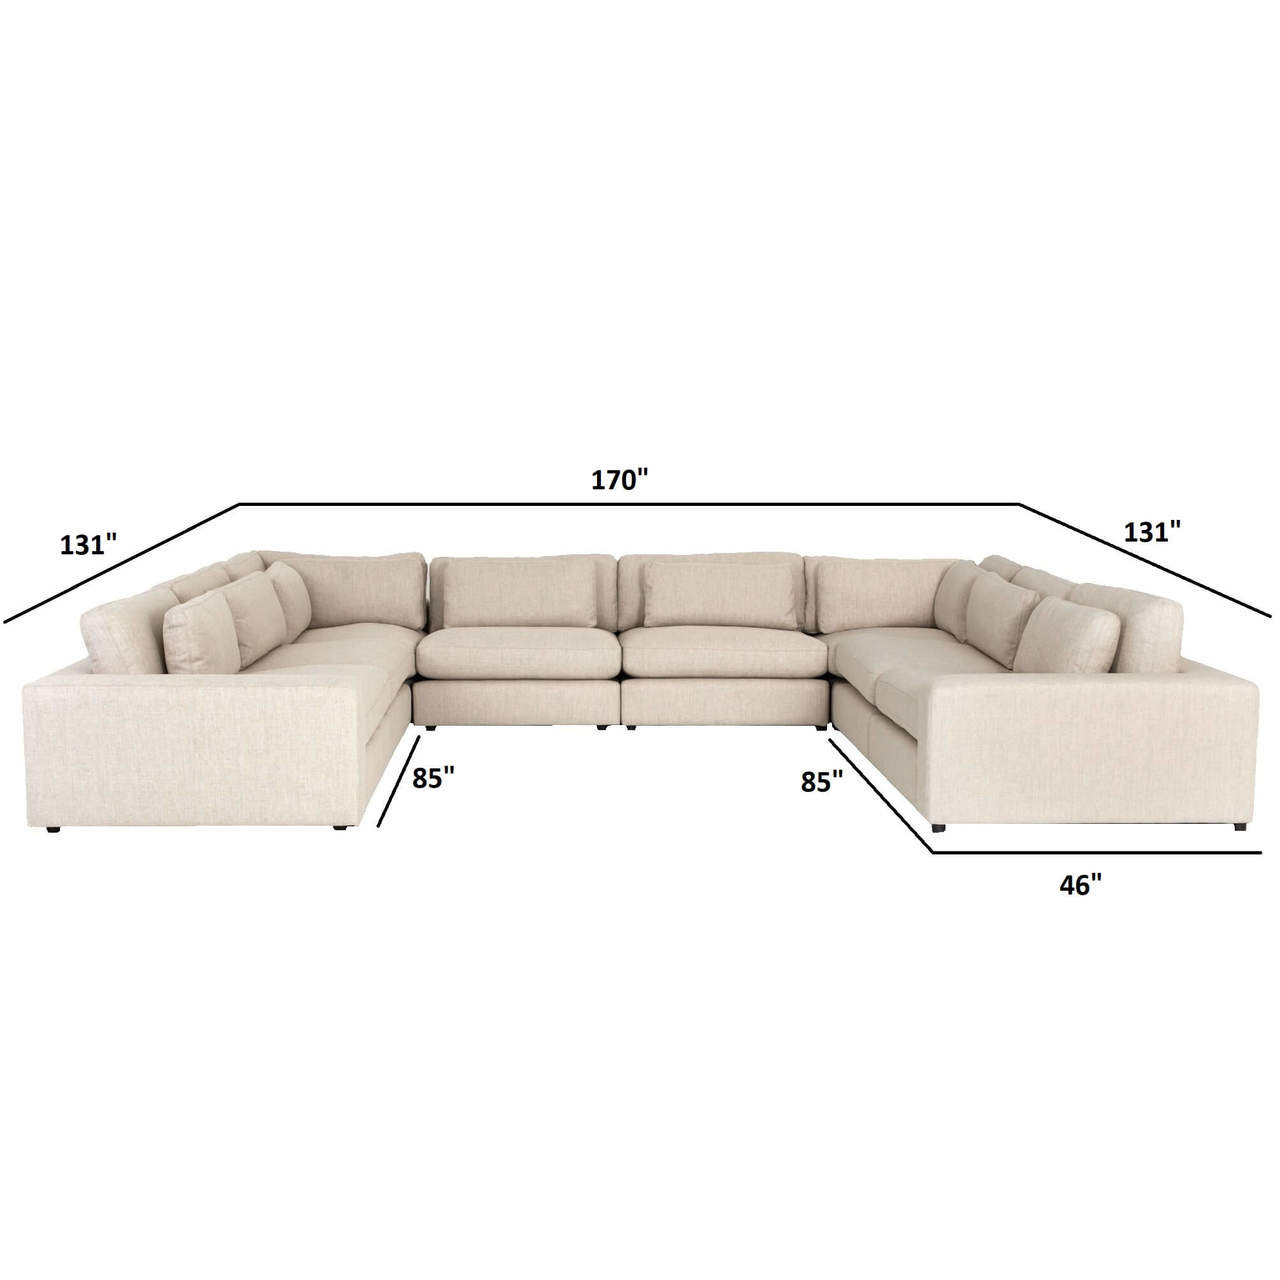 Bloor Contemporary Beige Linen 8 Piece U Shaped Sectional Sofa